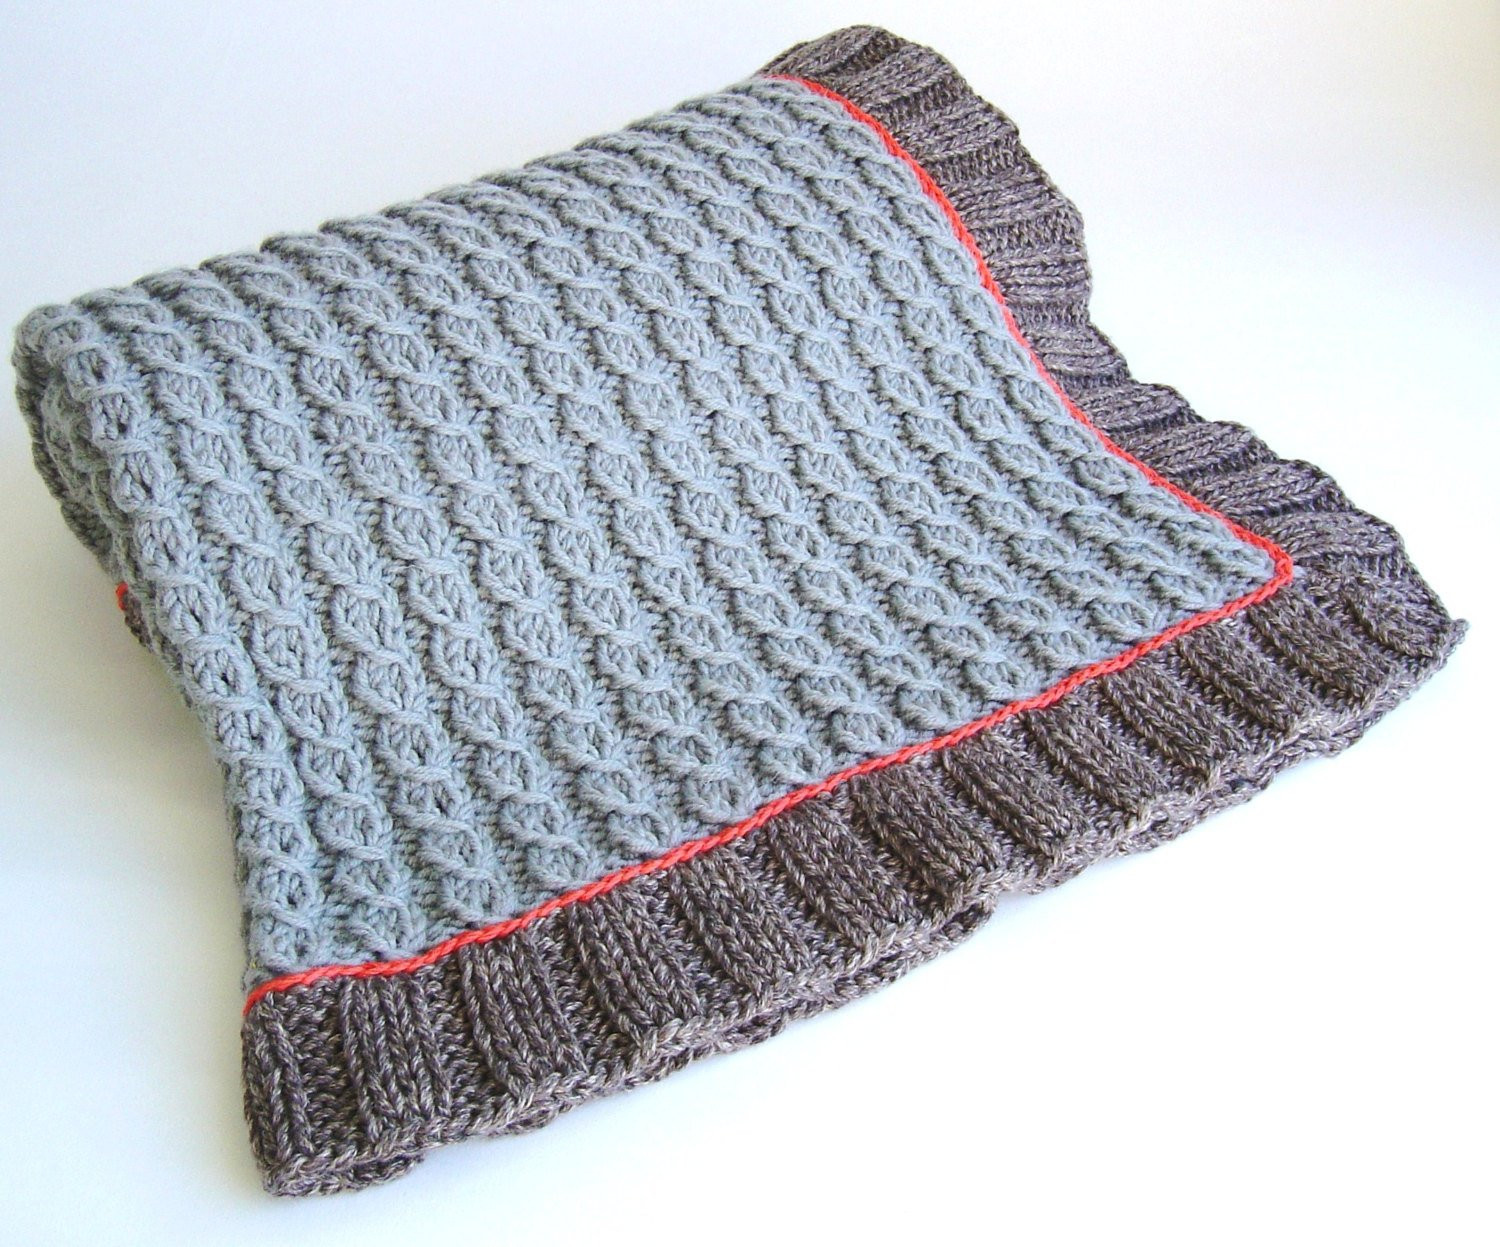 Knitting A Baby Blanket for Beginners New Knitting Pattern Mock Cable Baby Blanket Easy Knit Lap Blanket Of Marvelous 48 Ideas Knitting A Baby Blanket for Beginners